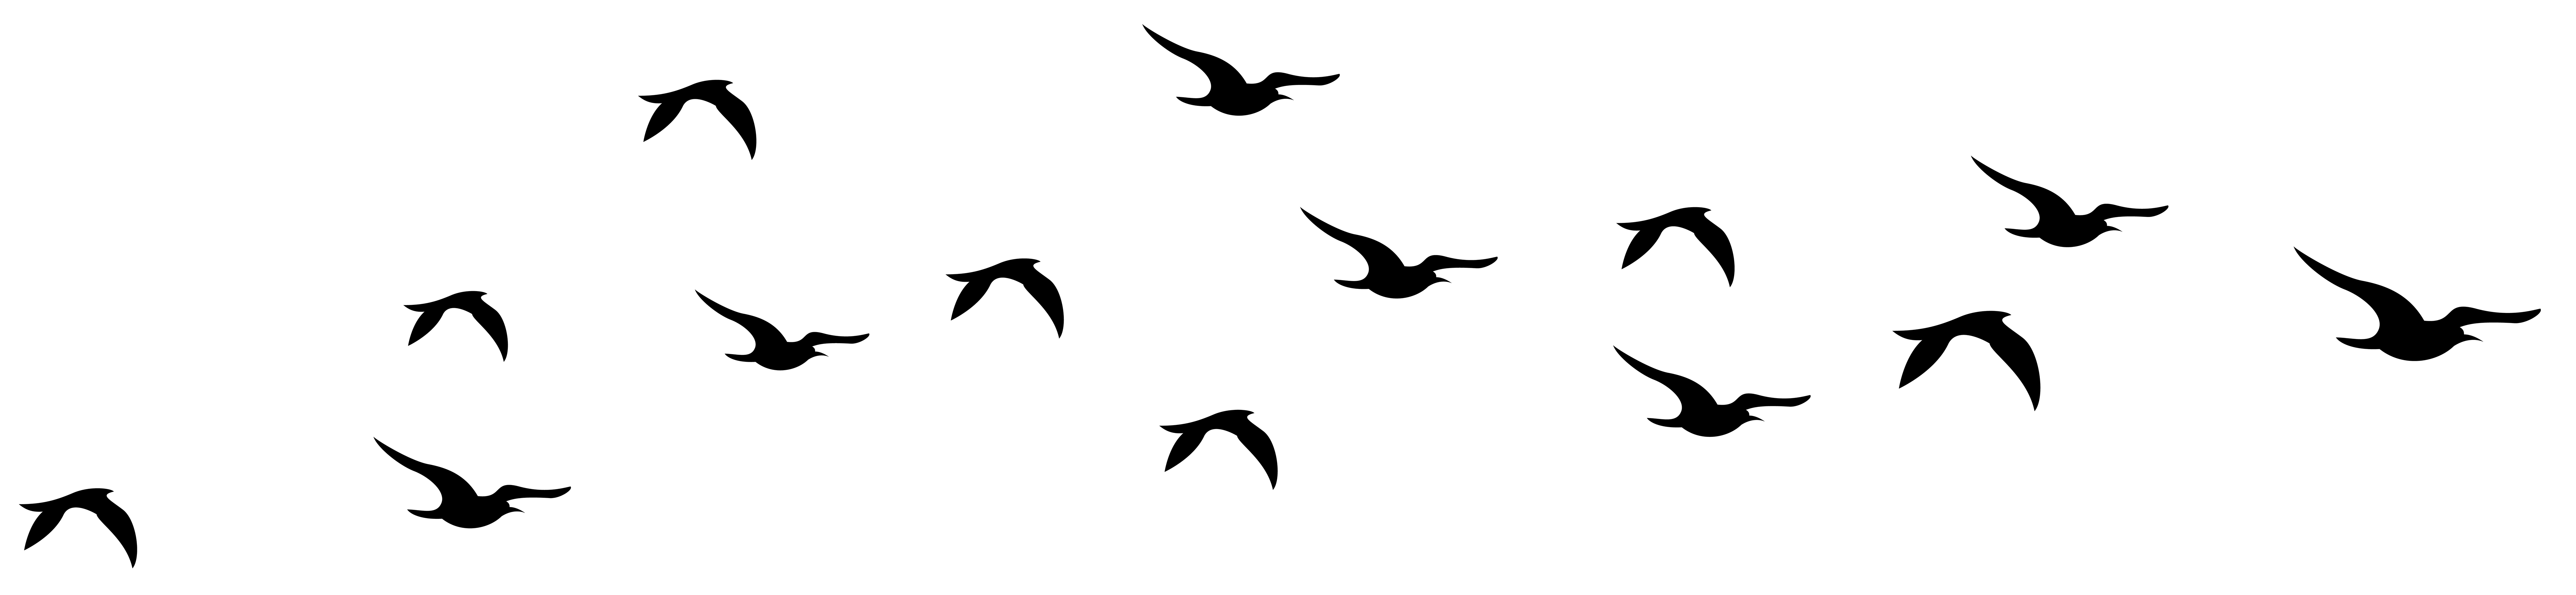 Parrot clipart bird fly. Silhouette flying transparent png